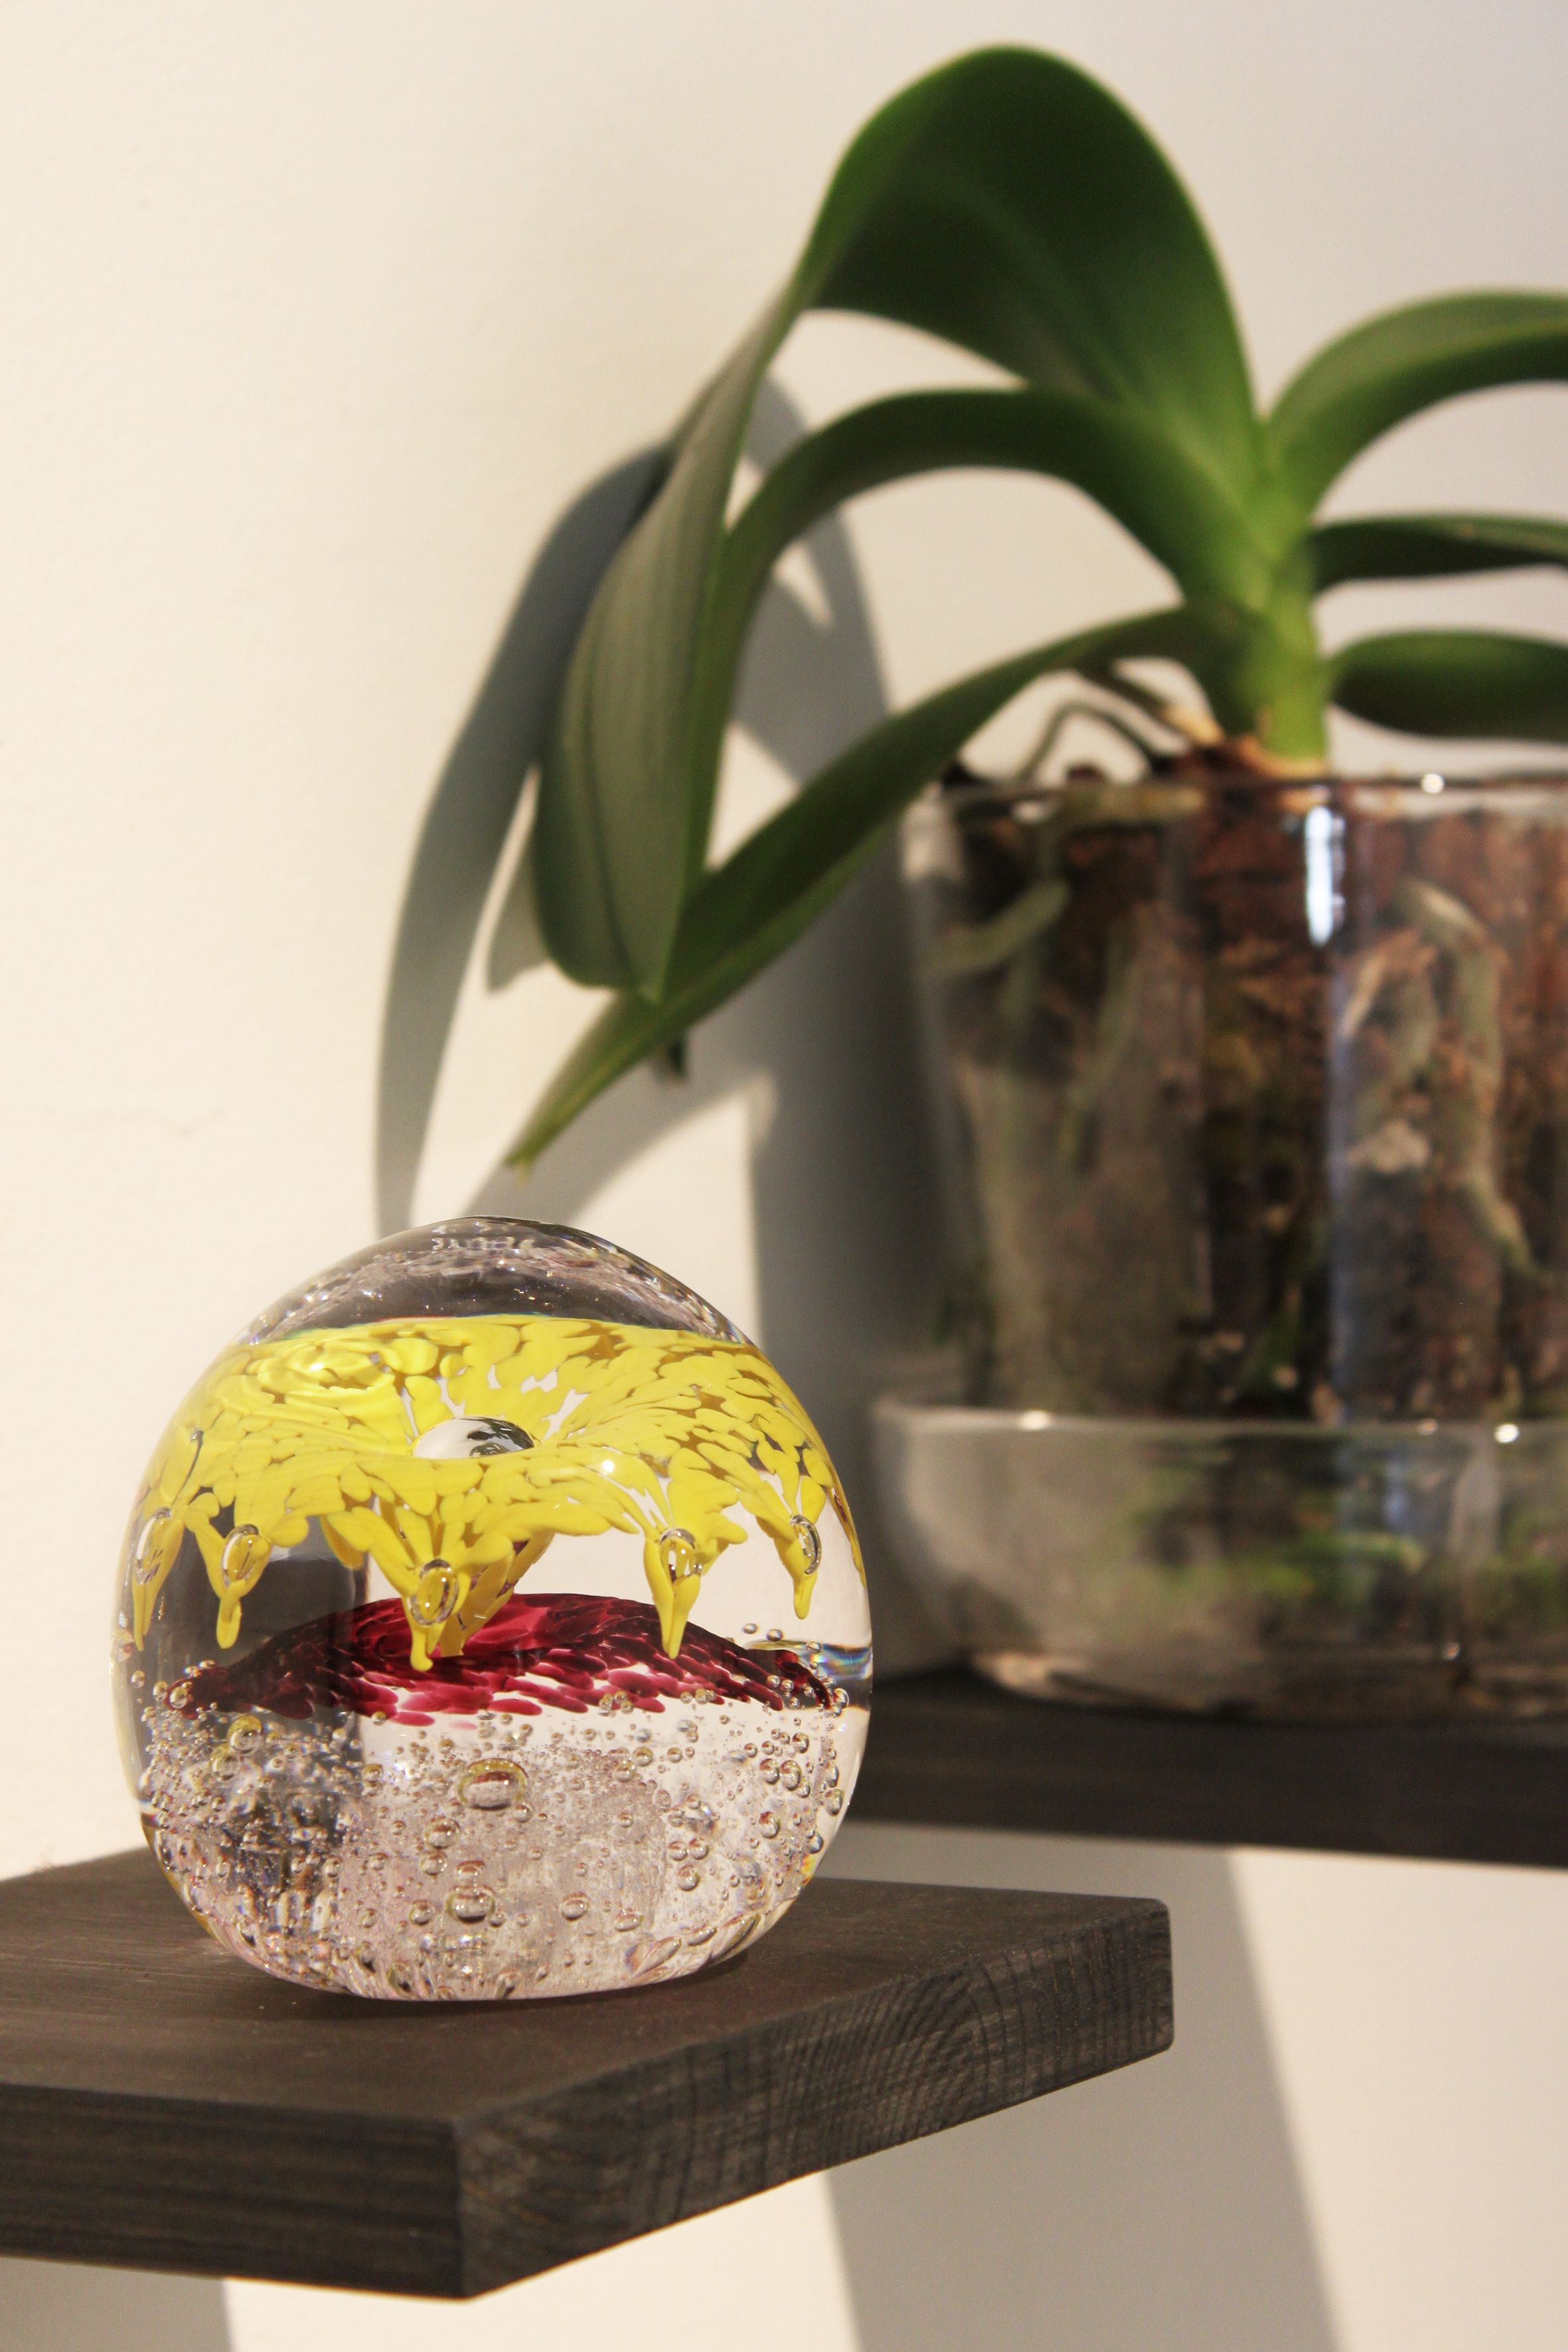 Colorful glass paper weight by Kari Alakoski. Orchid plant pot made of glass by Mafka.